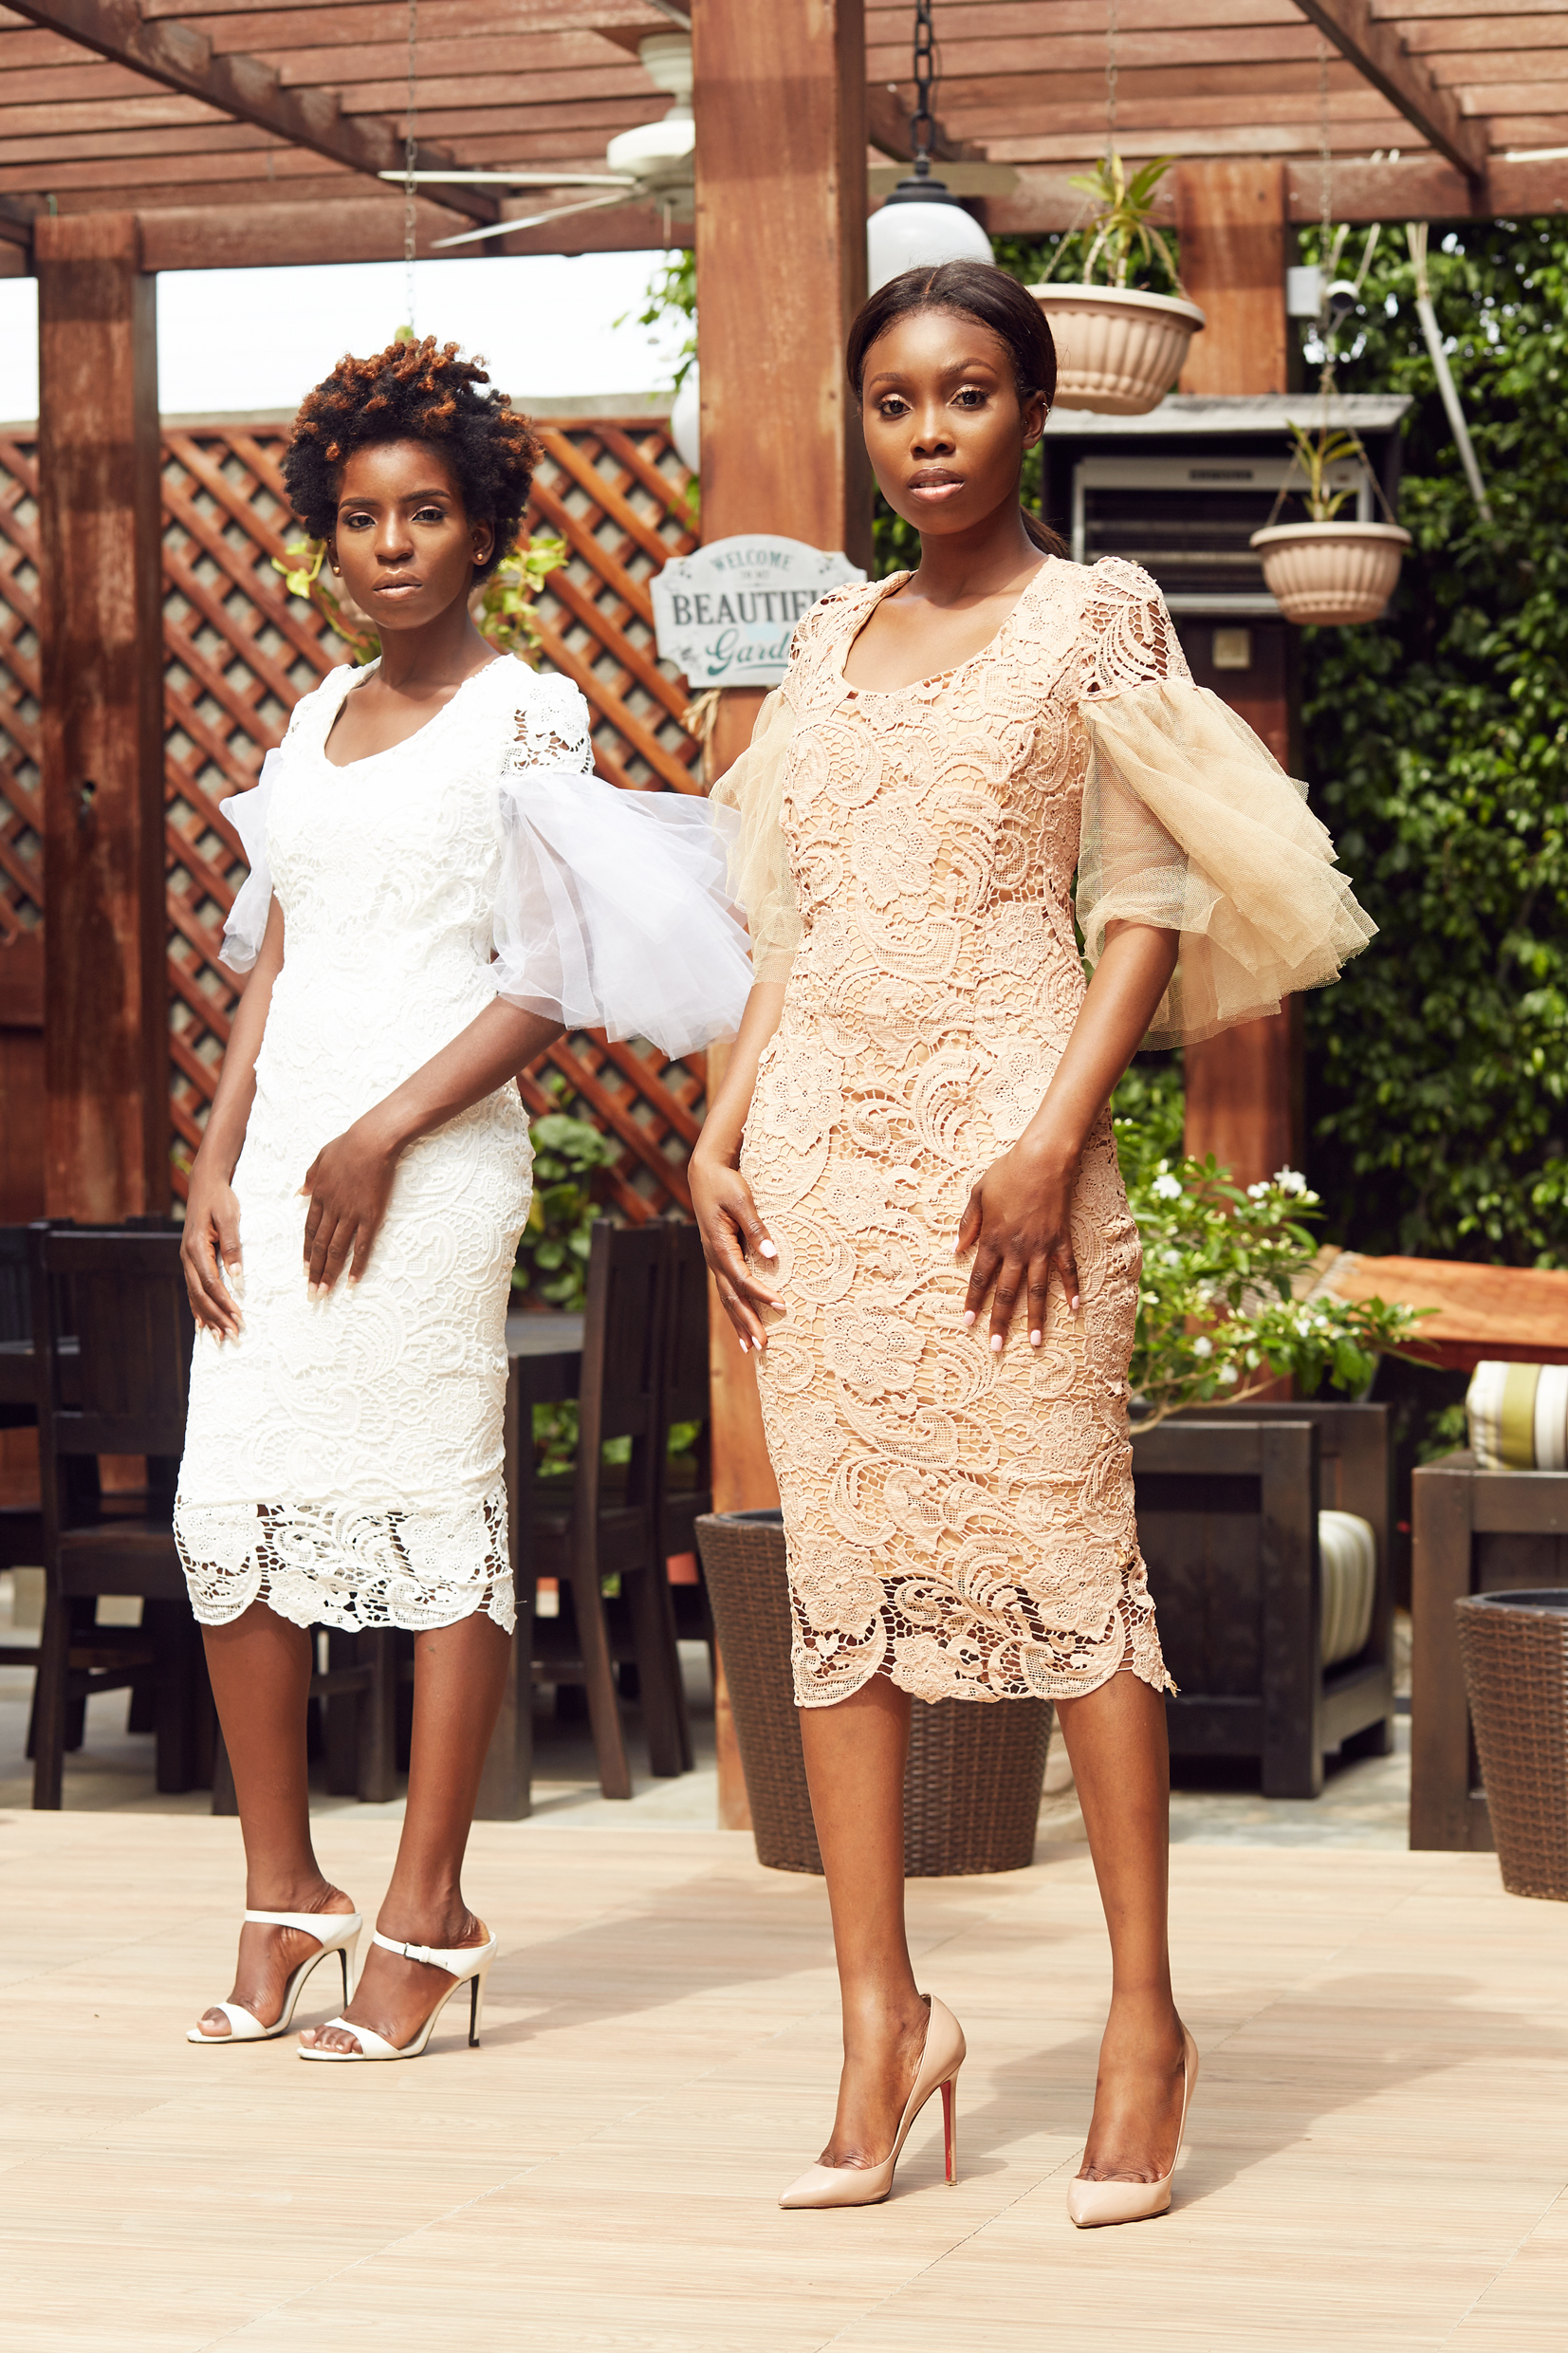 Top Nigerian Designer 'Maju' Releases New collection 'The Maju Style Duo Edit' Starring Style Superstars.